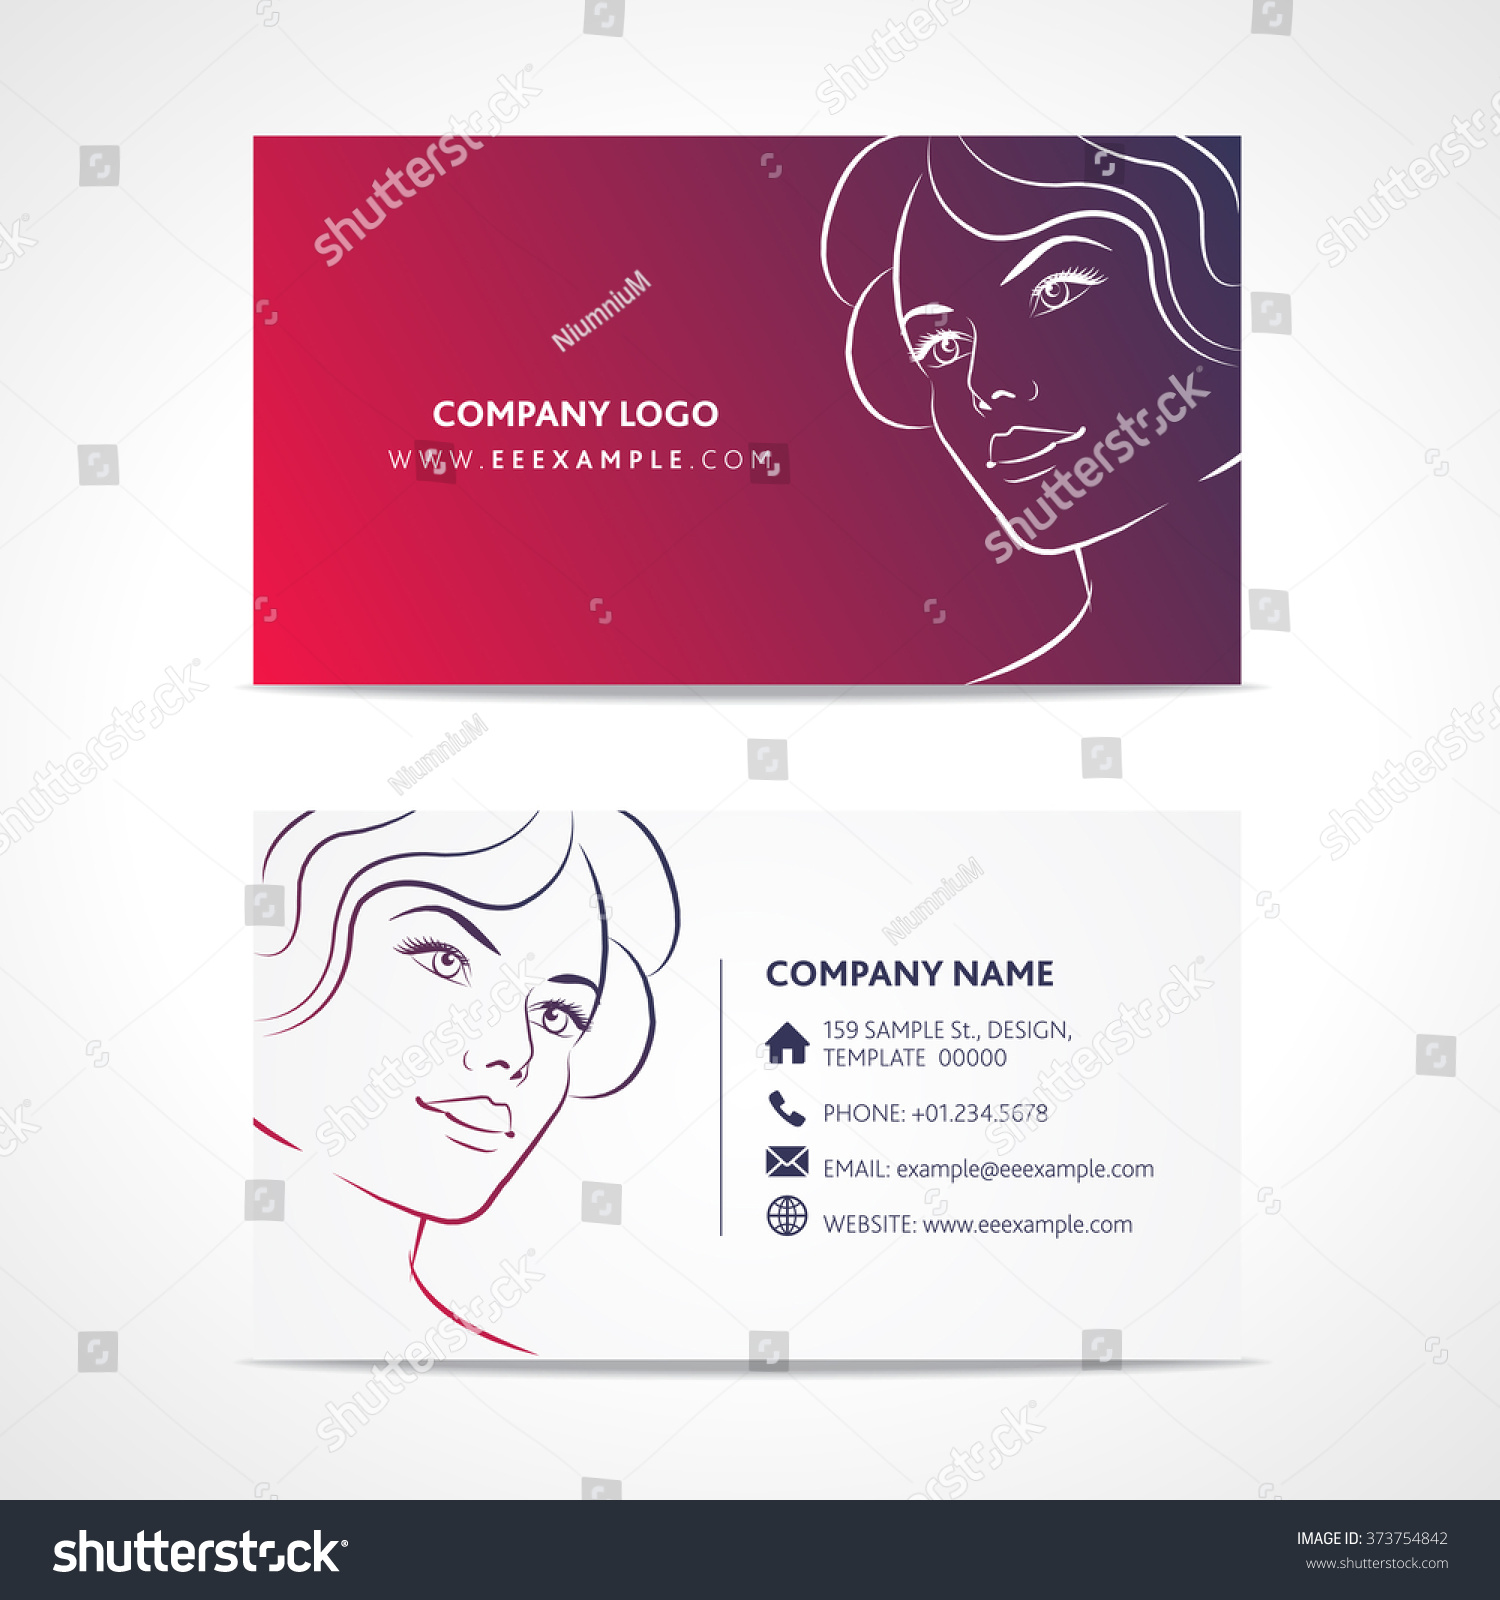 Business Card Templates Fashion. Fashion Business Cards 21200 ...